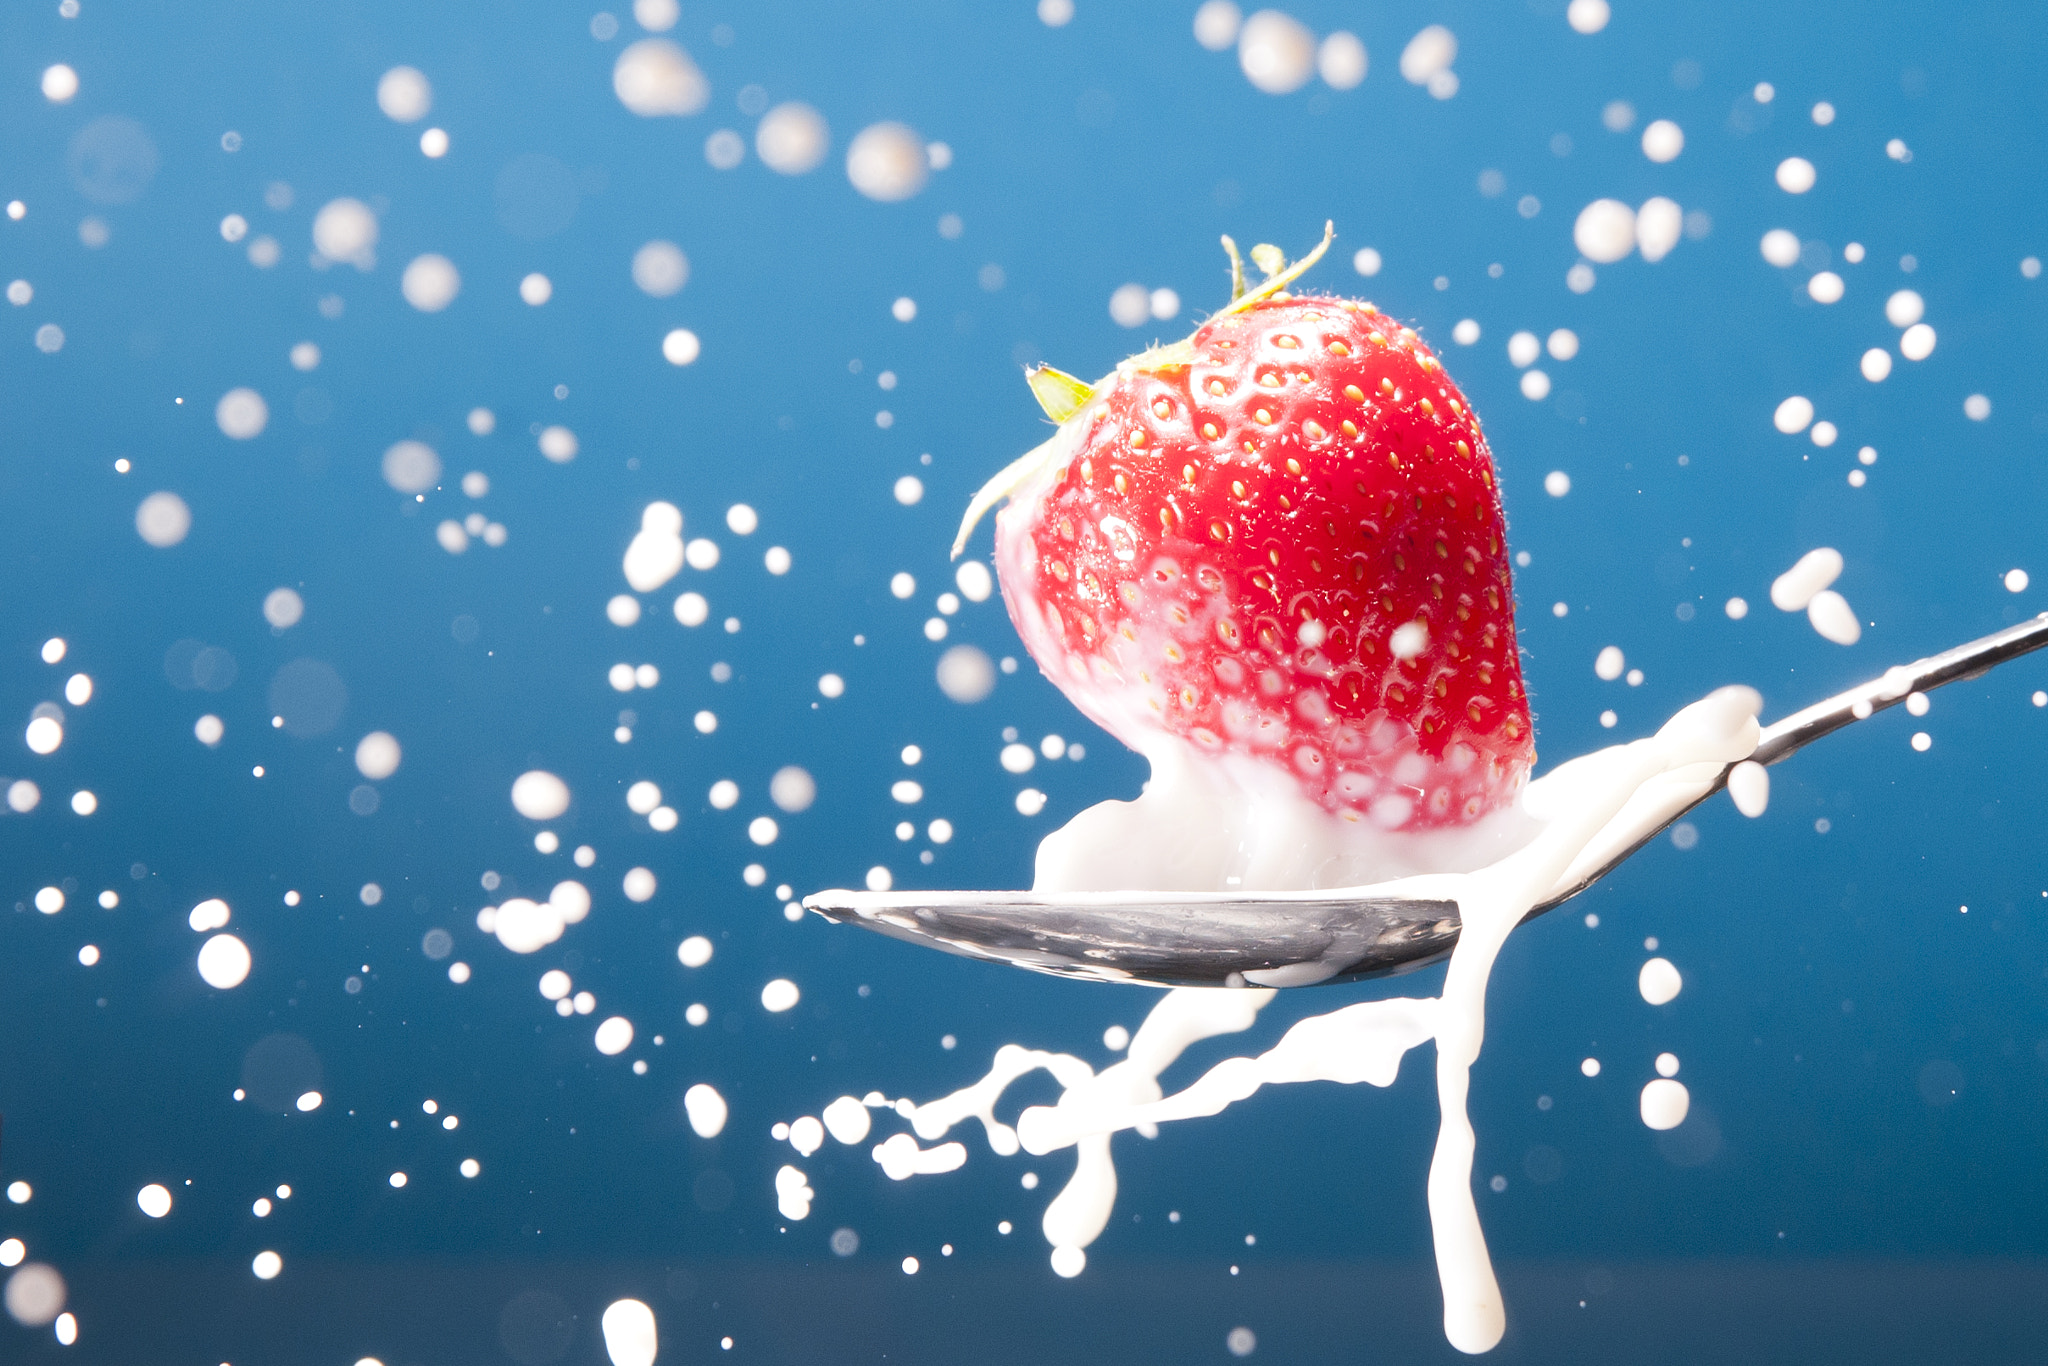 Photograph Strawberry Splash by Michiel Tersteege on 500px